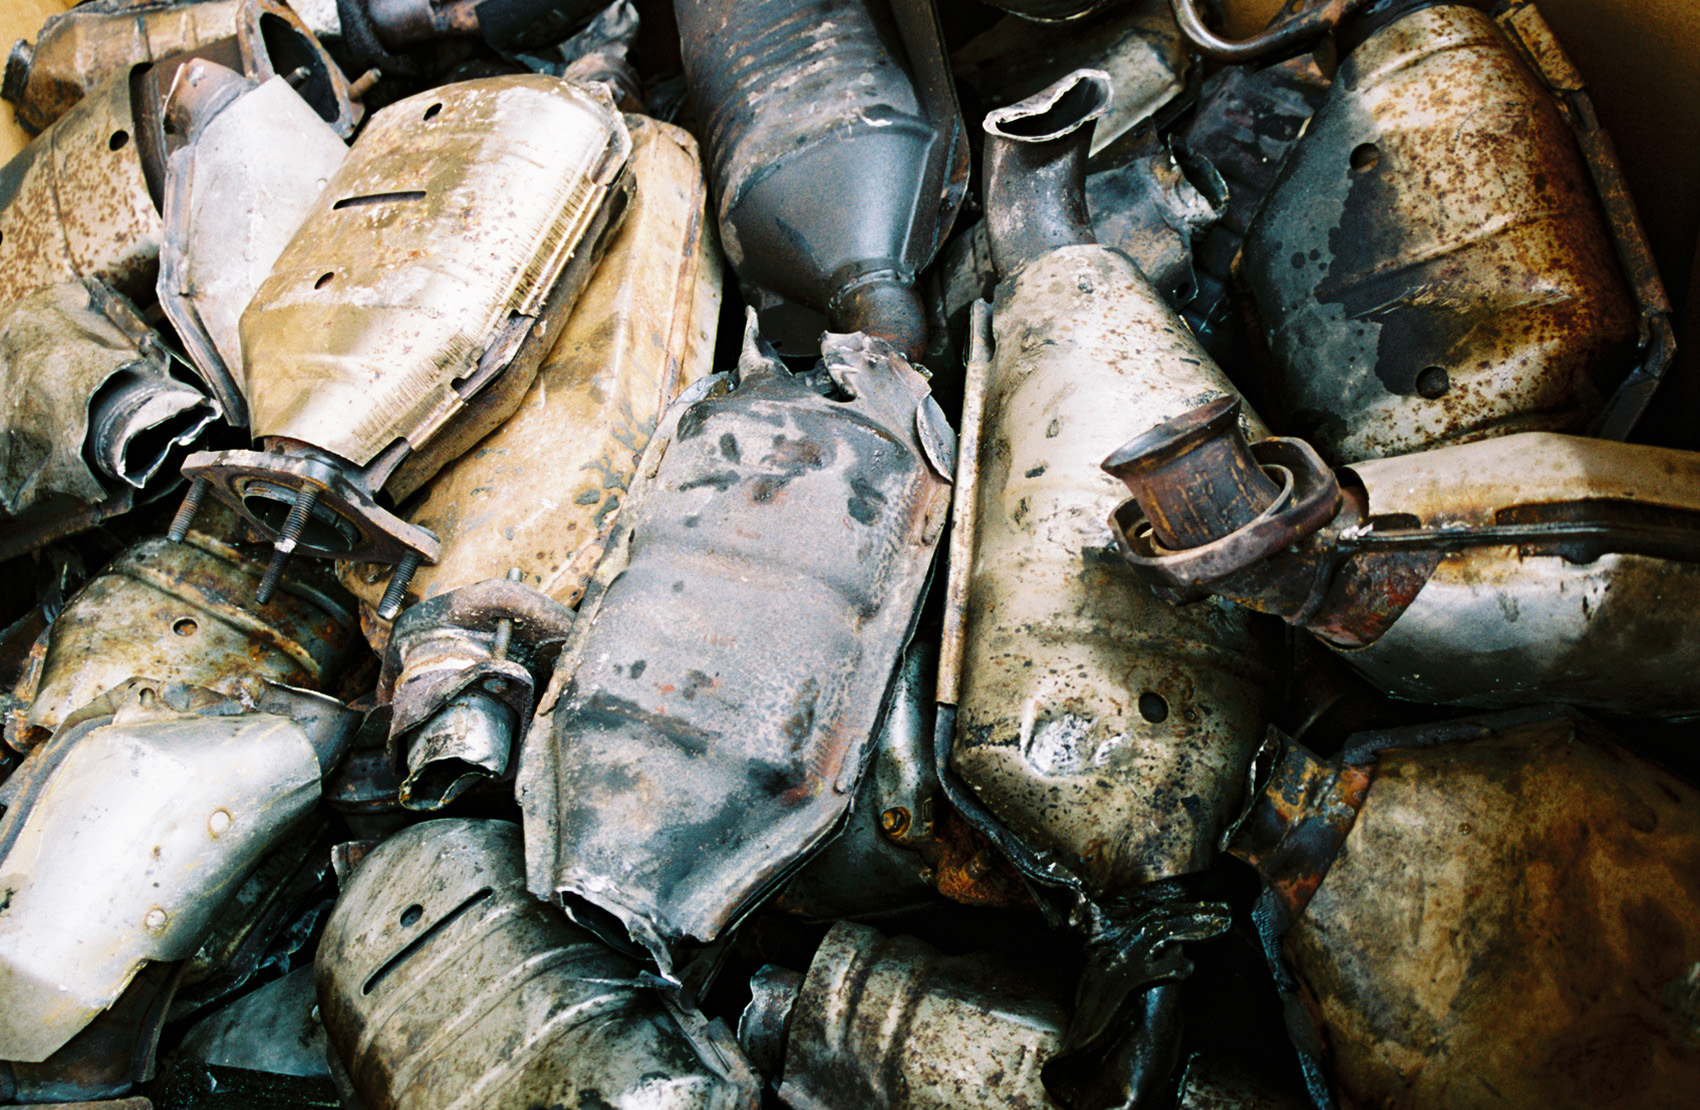 ISRI's NJ Chapter Proposes Changes to Strengthen Catalytic Converter Bill